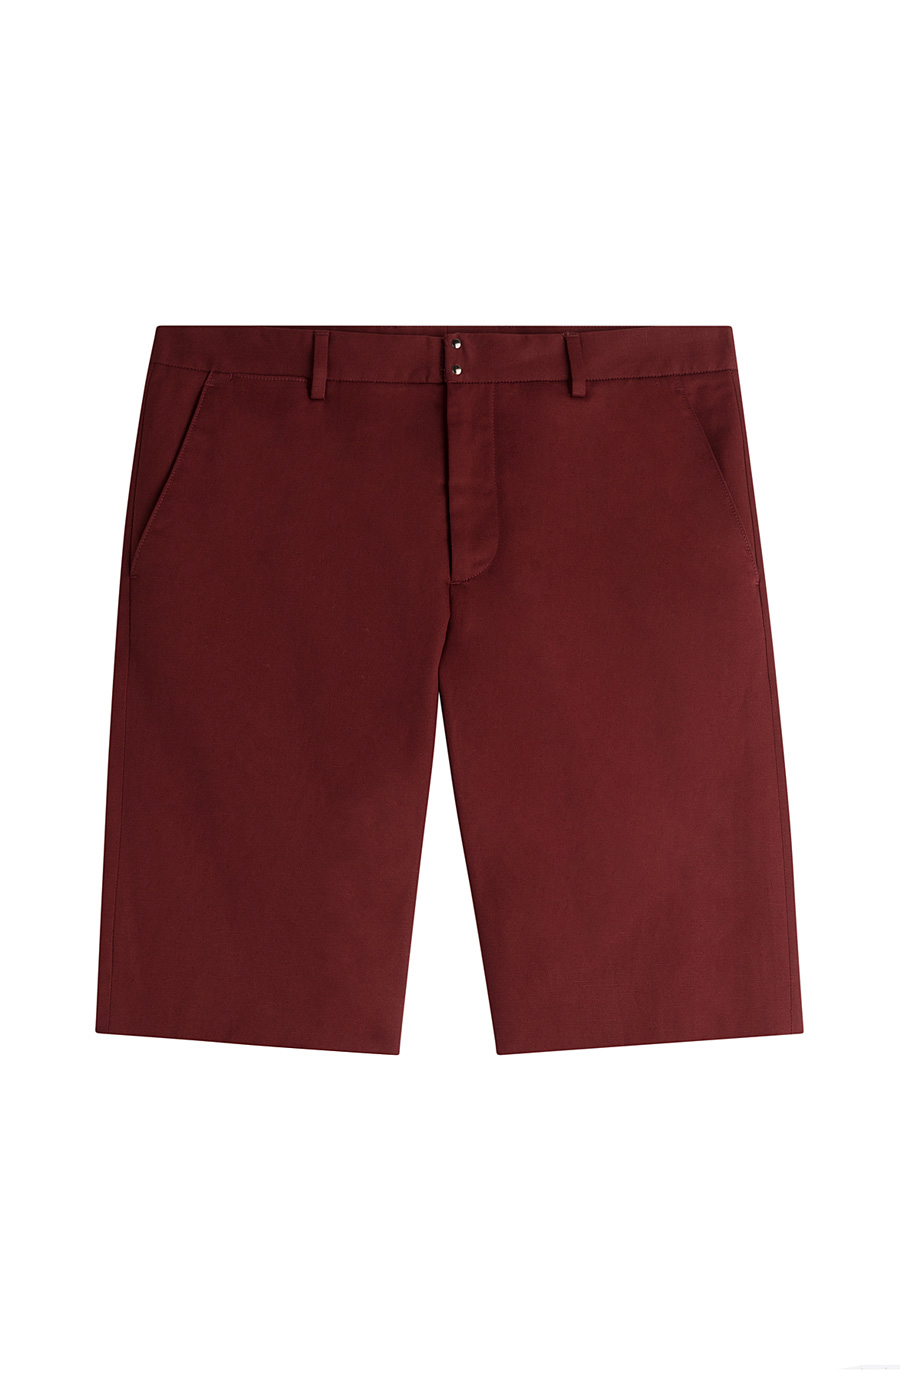 Maison Margiela Cotton-linen Shorts In Red